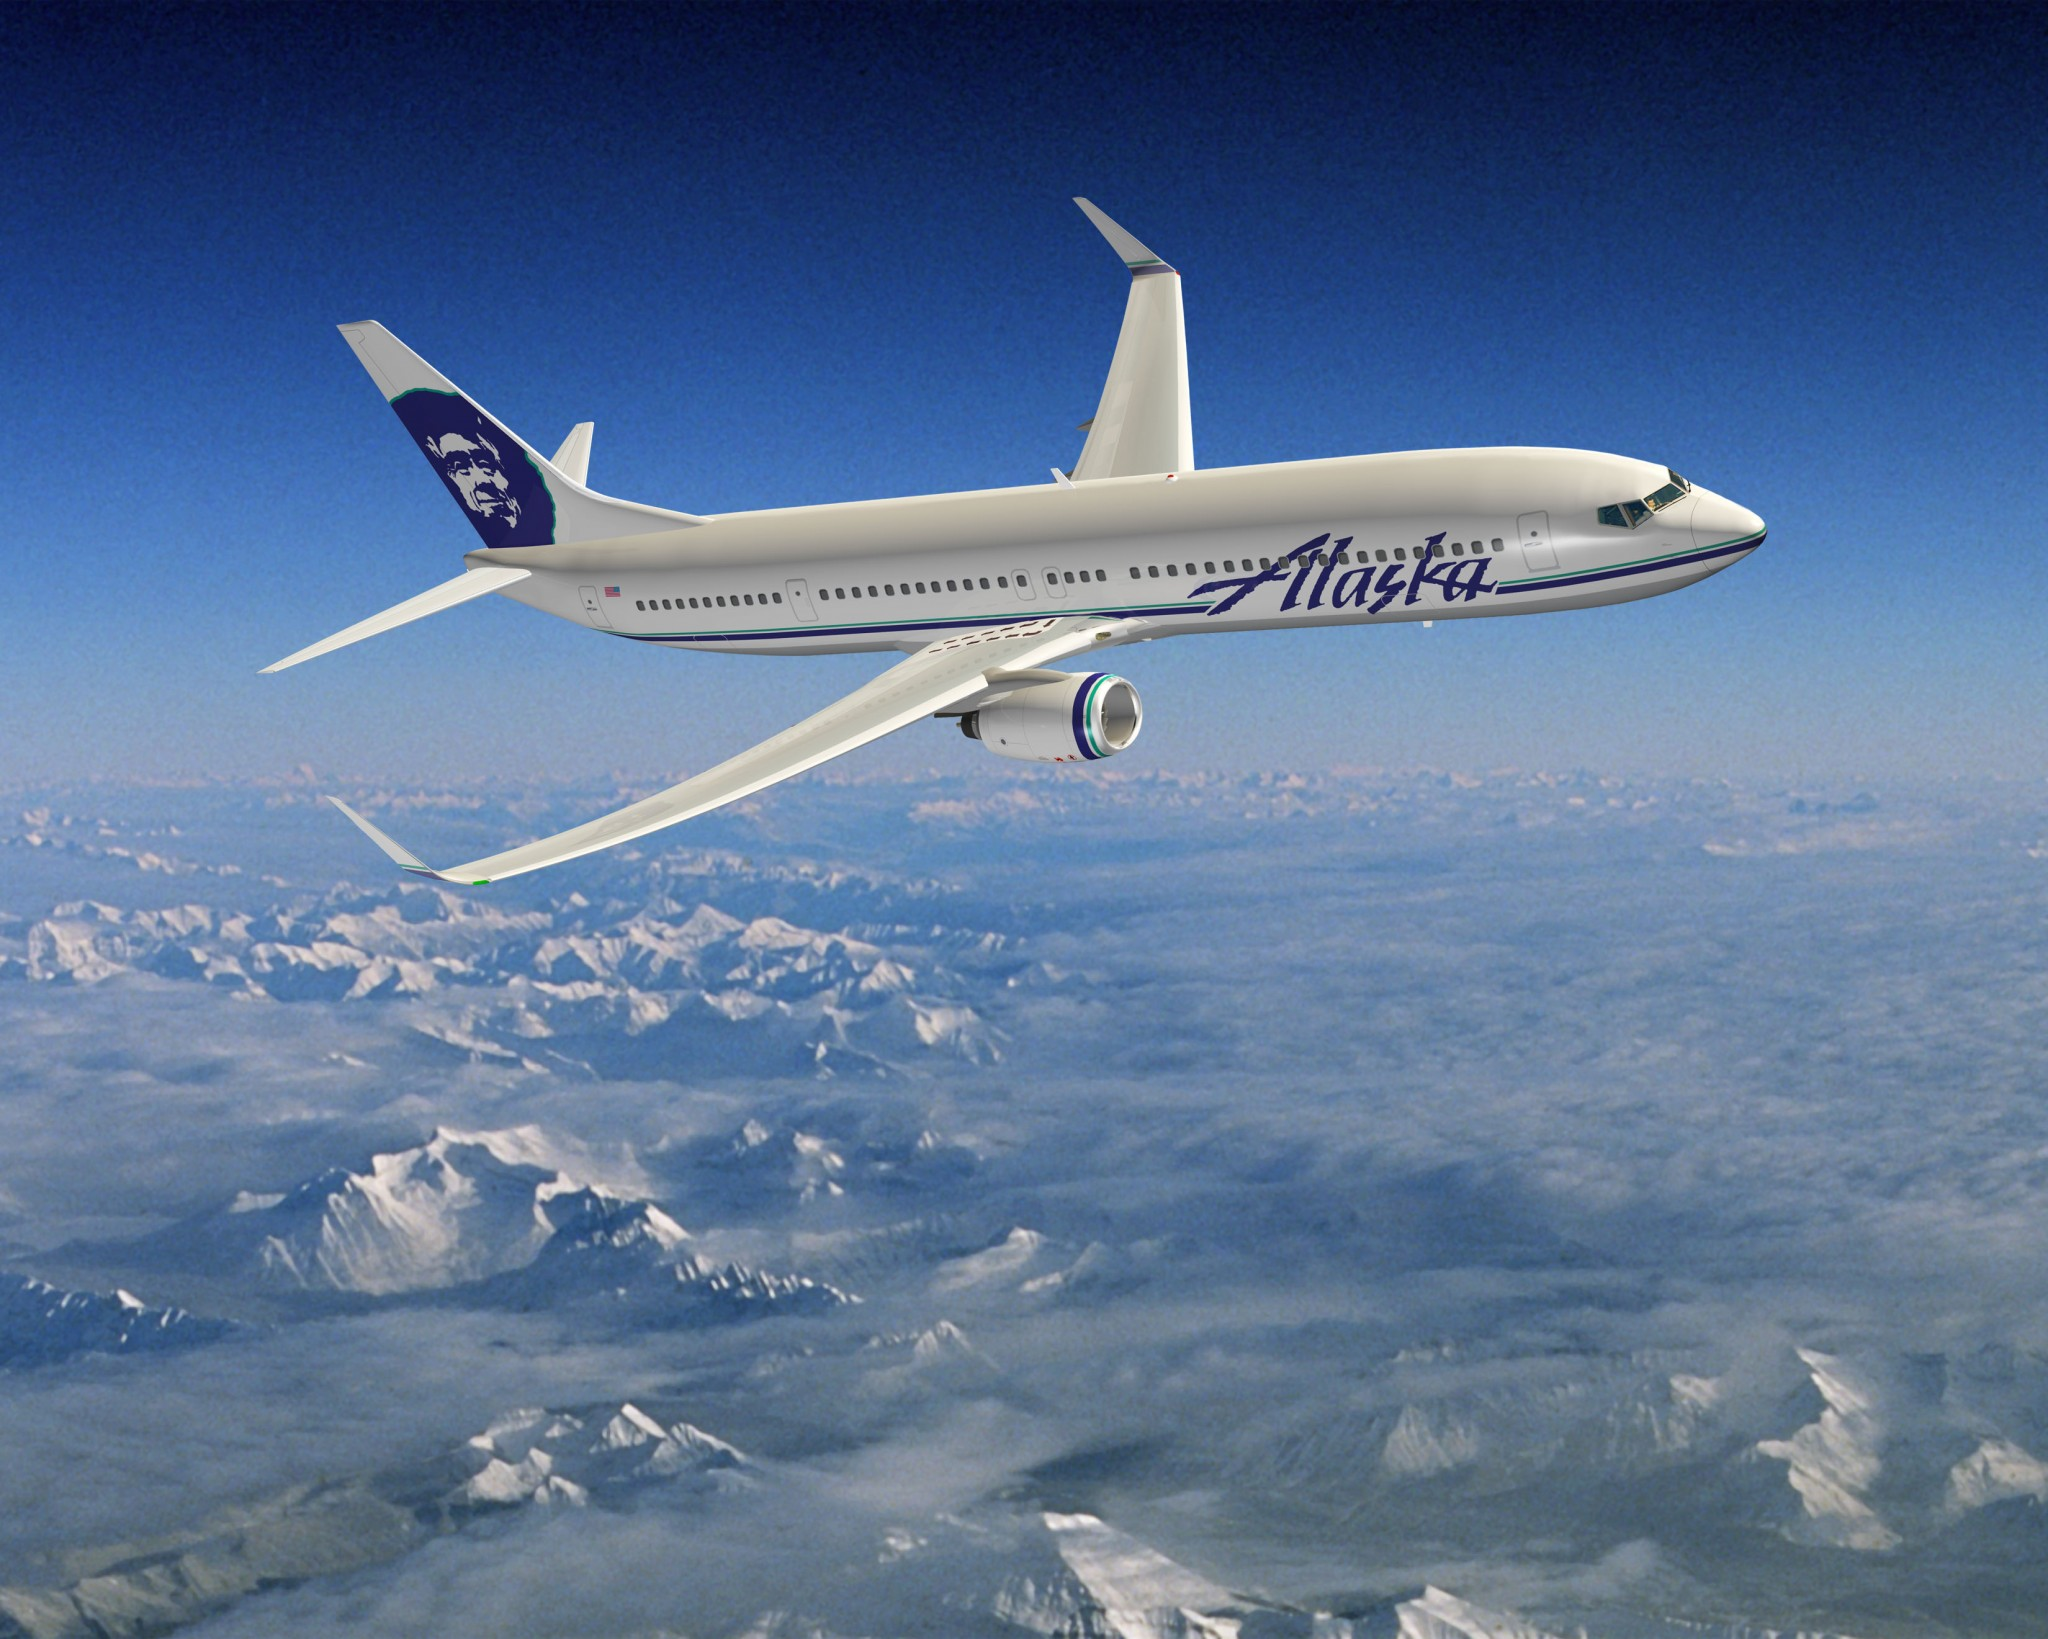 ALC delivers the first of 13 new Boeing 737s to Alaska Airlines